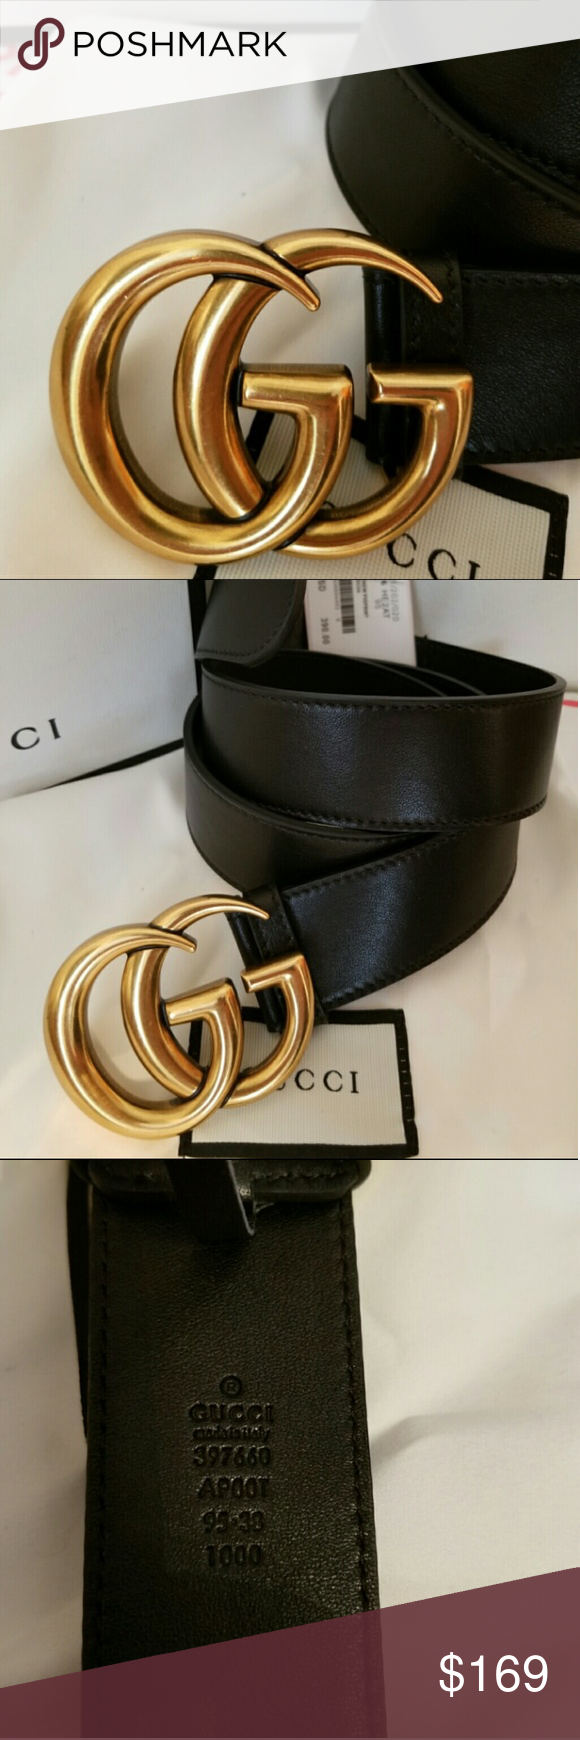 d6f463e73e3 😍Authentic Gucci Belt Black Leather Gold Brass 😍Brand New Gucci Belt Black  Leather with Gold Brass GG Buckle. HOT!  Comes with tags